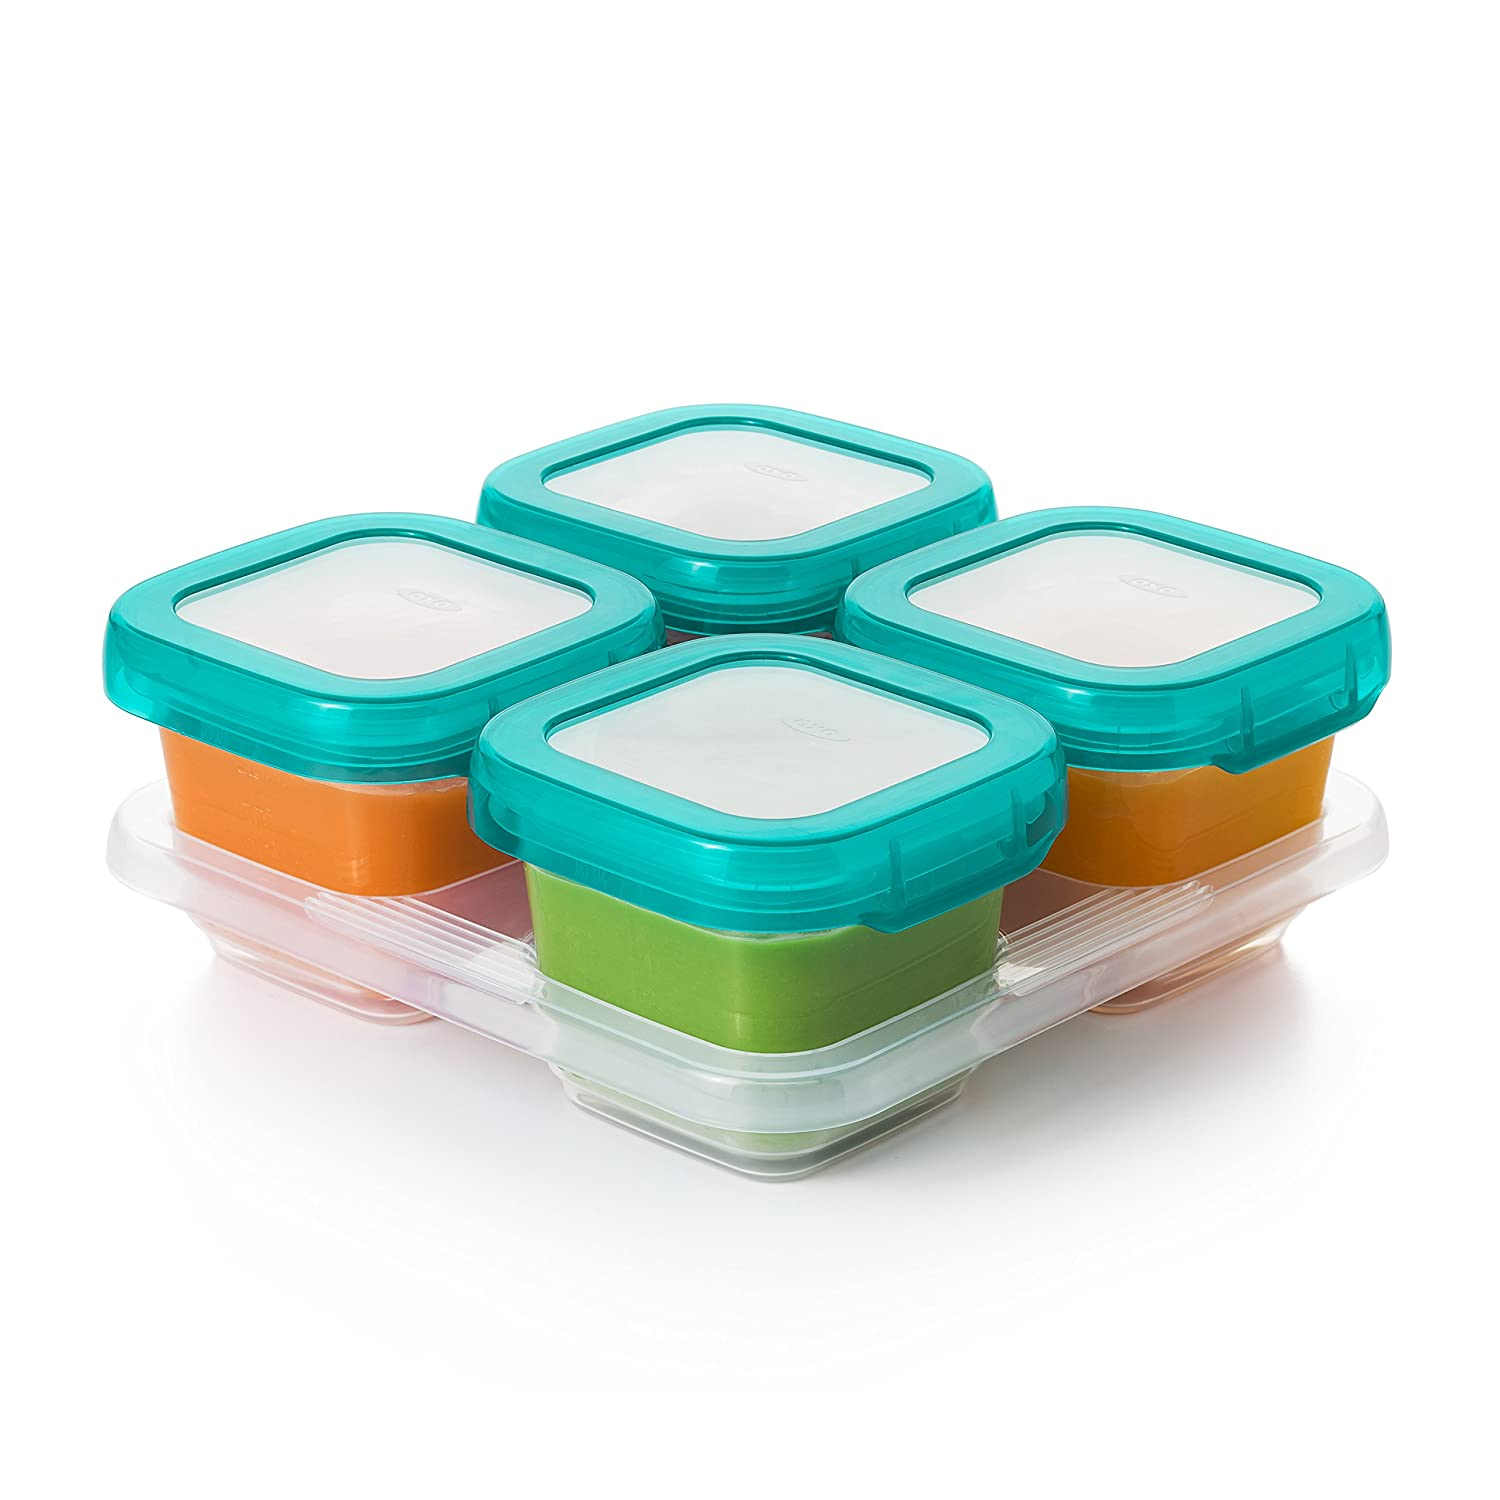 OXO Tot Baby Blocks Food Storage Containers, Teal, 4 Ounce 61130000